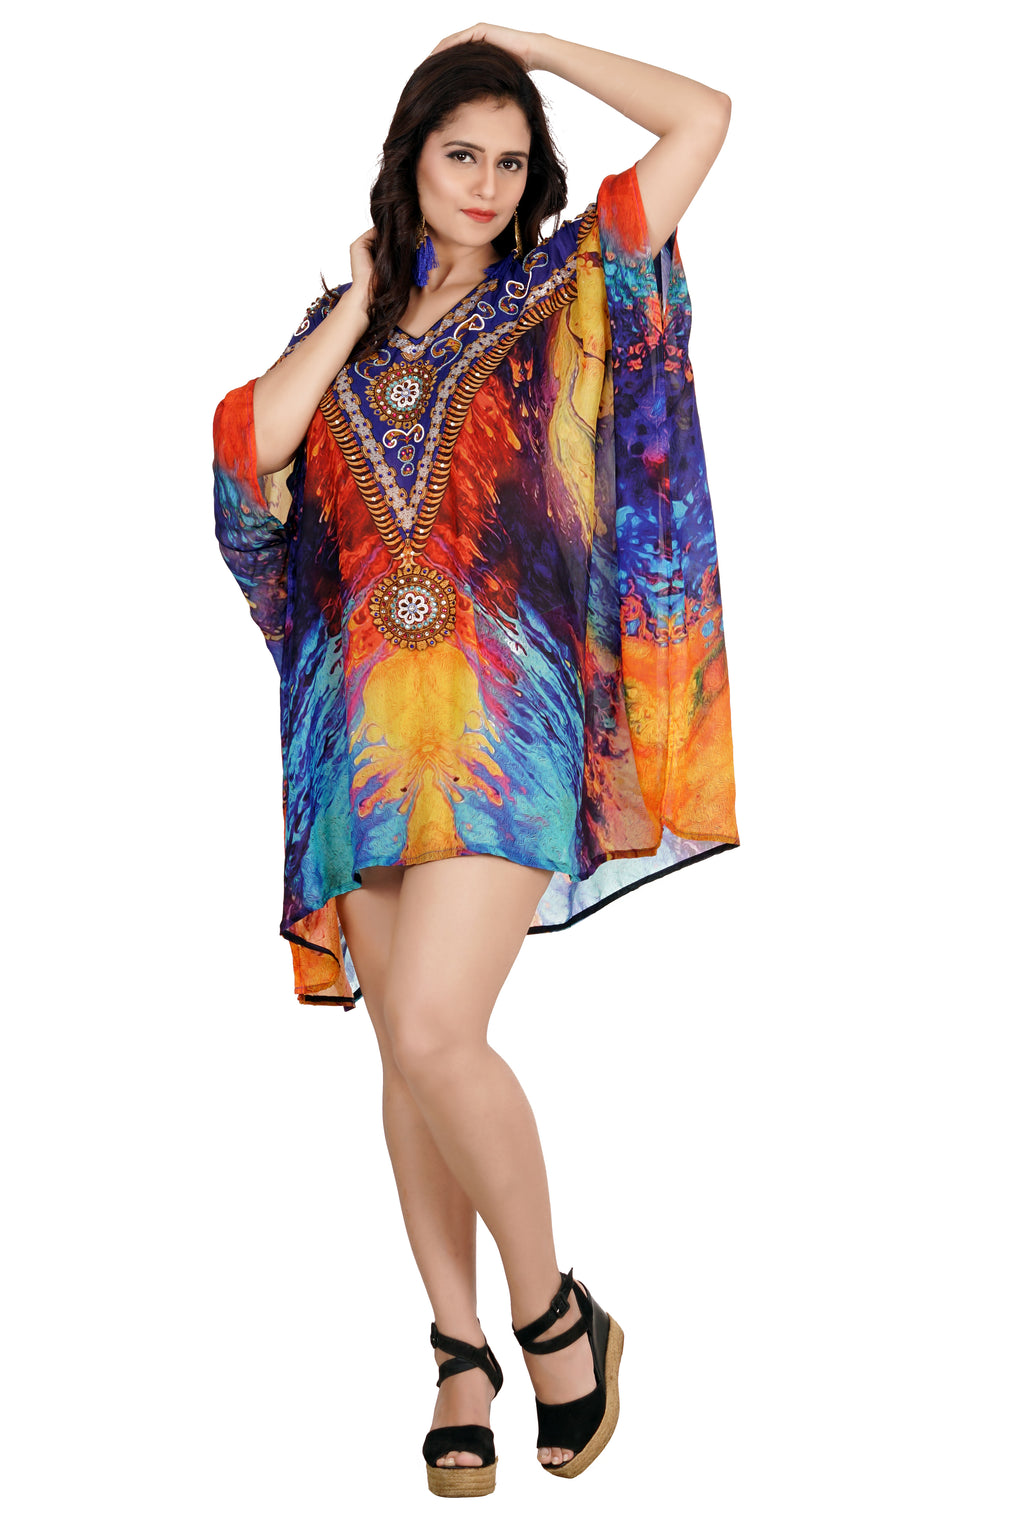 Dress in Women's Silk Kaftan embellished with Ornament design and Multicolored short Print - Silk kaftan